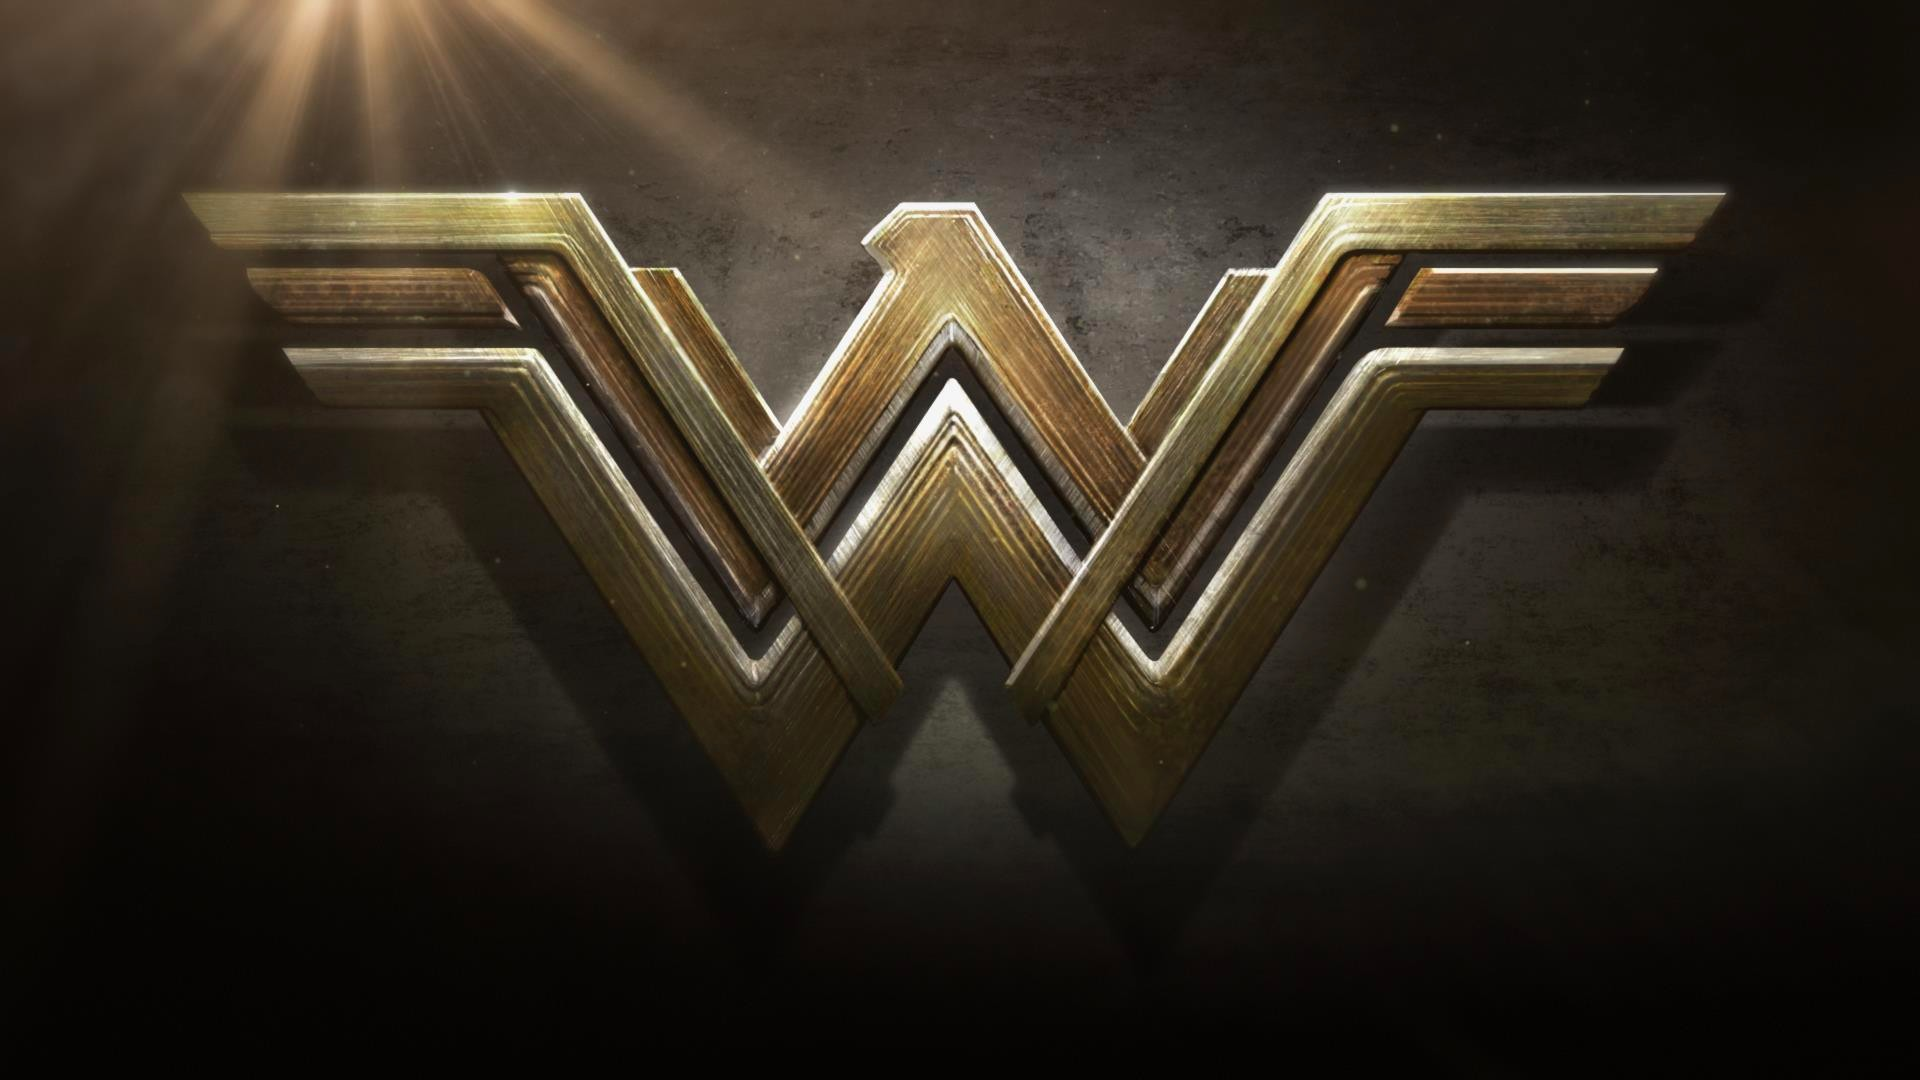 wonder woman logo dc comics hd desktop image